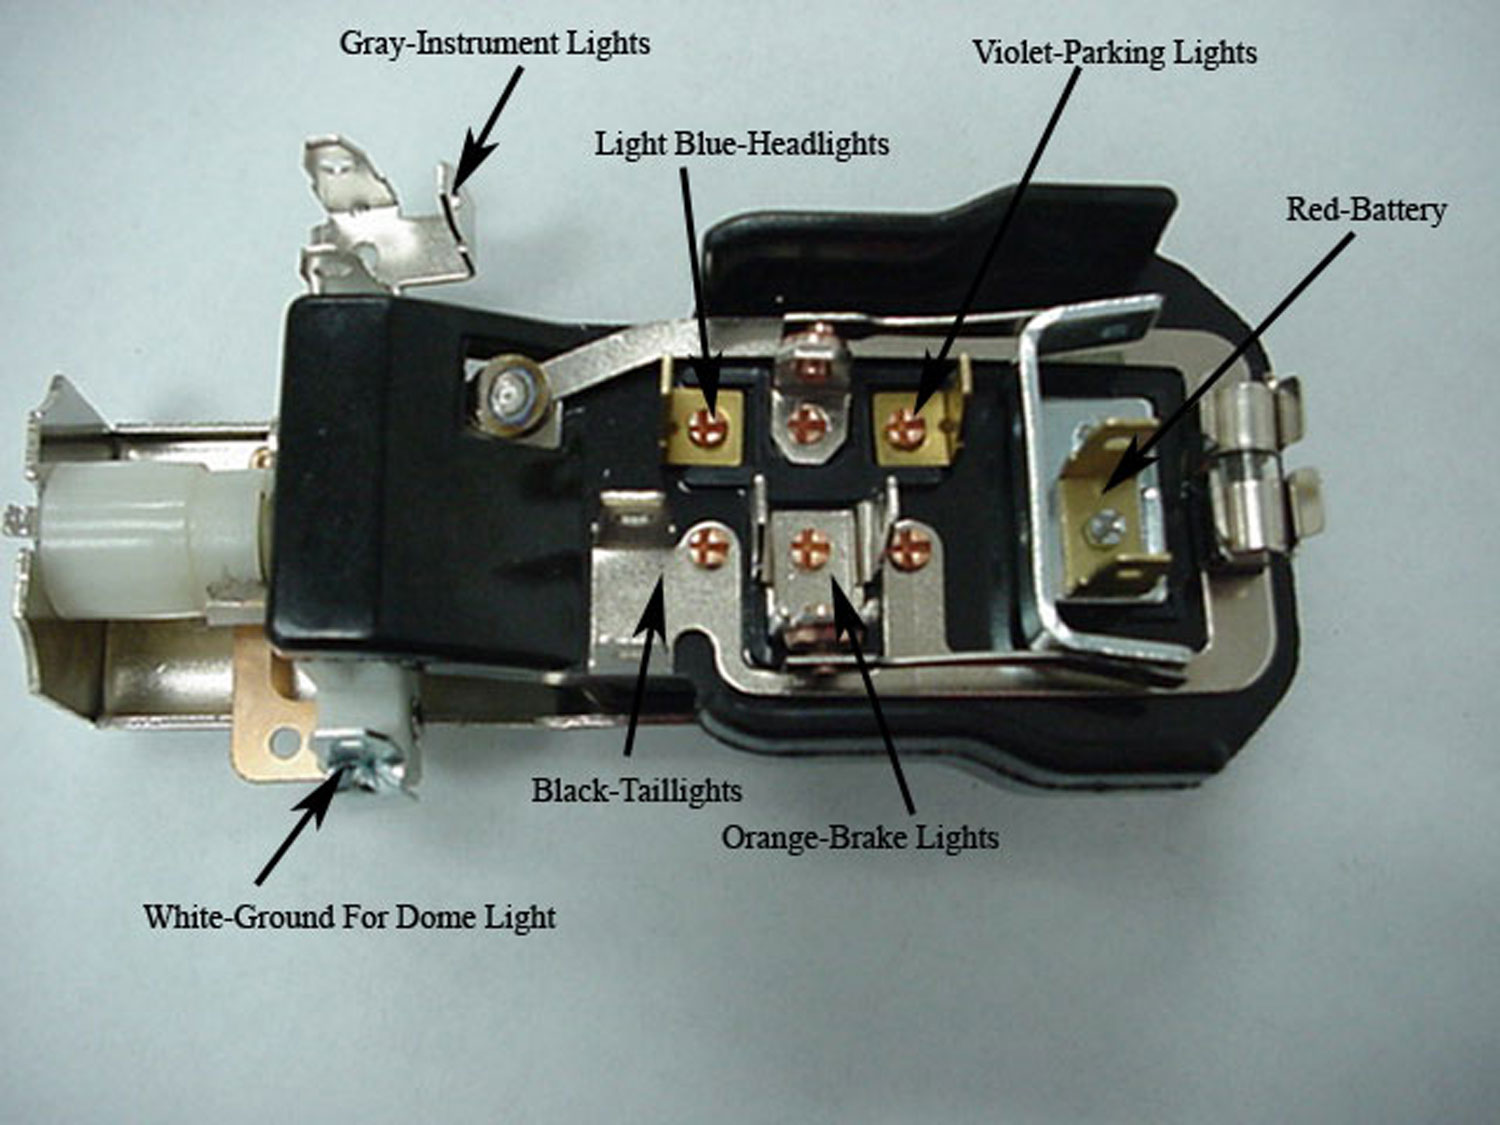 57 Chevy Light Switch Wiring - Wiring Diagram Recent quit-room -  quit-room.cosavedereanapoli.itquit-room.cosavedereanapoli.it